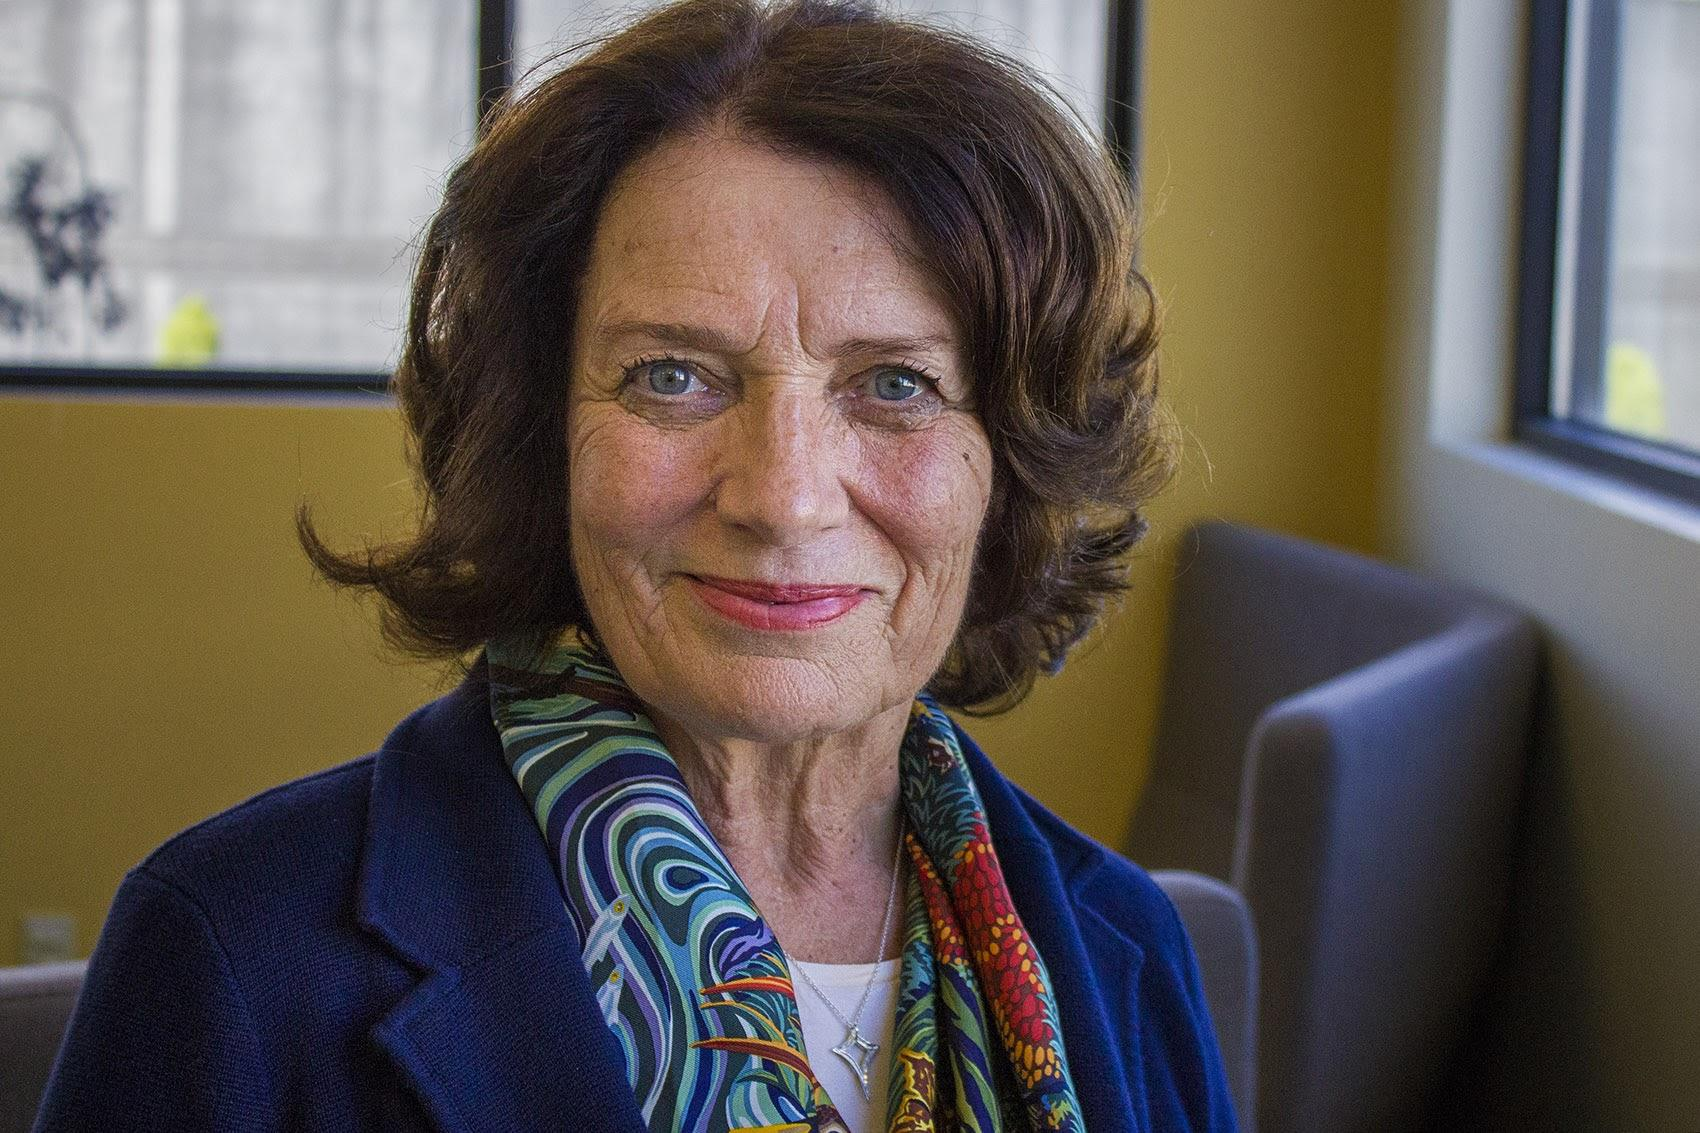 Margaret Trudeau — Mother And Wife To Prime Ministers — On Her Struggle With Mental Illness